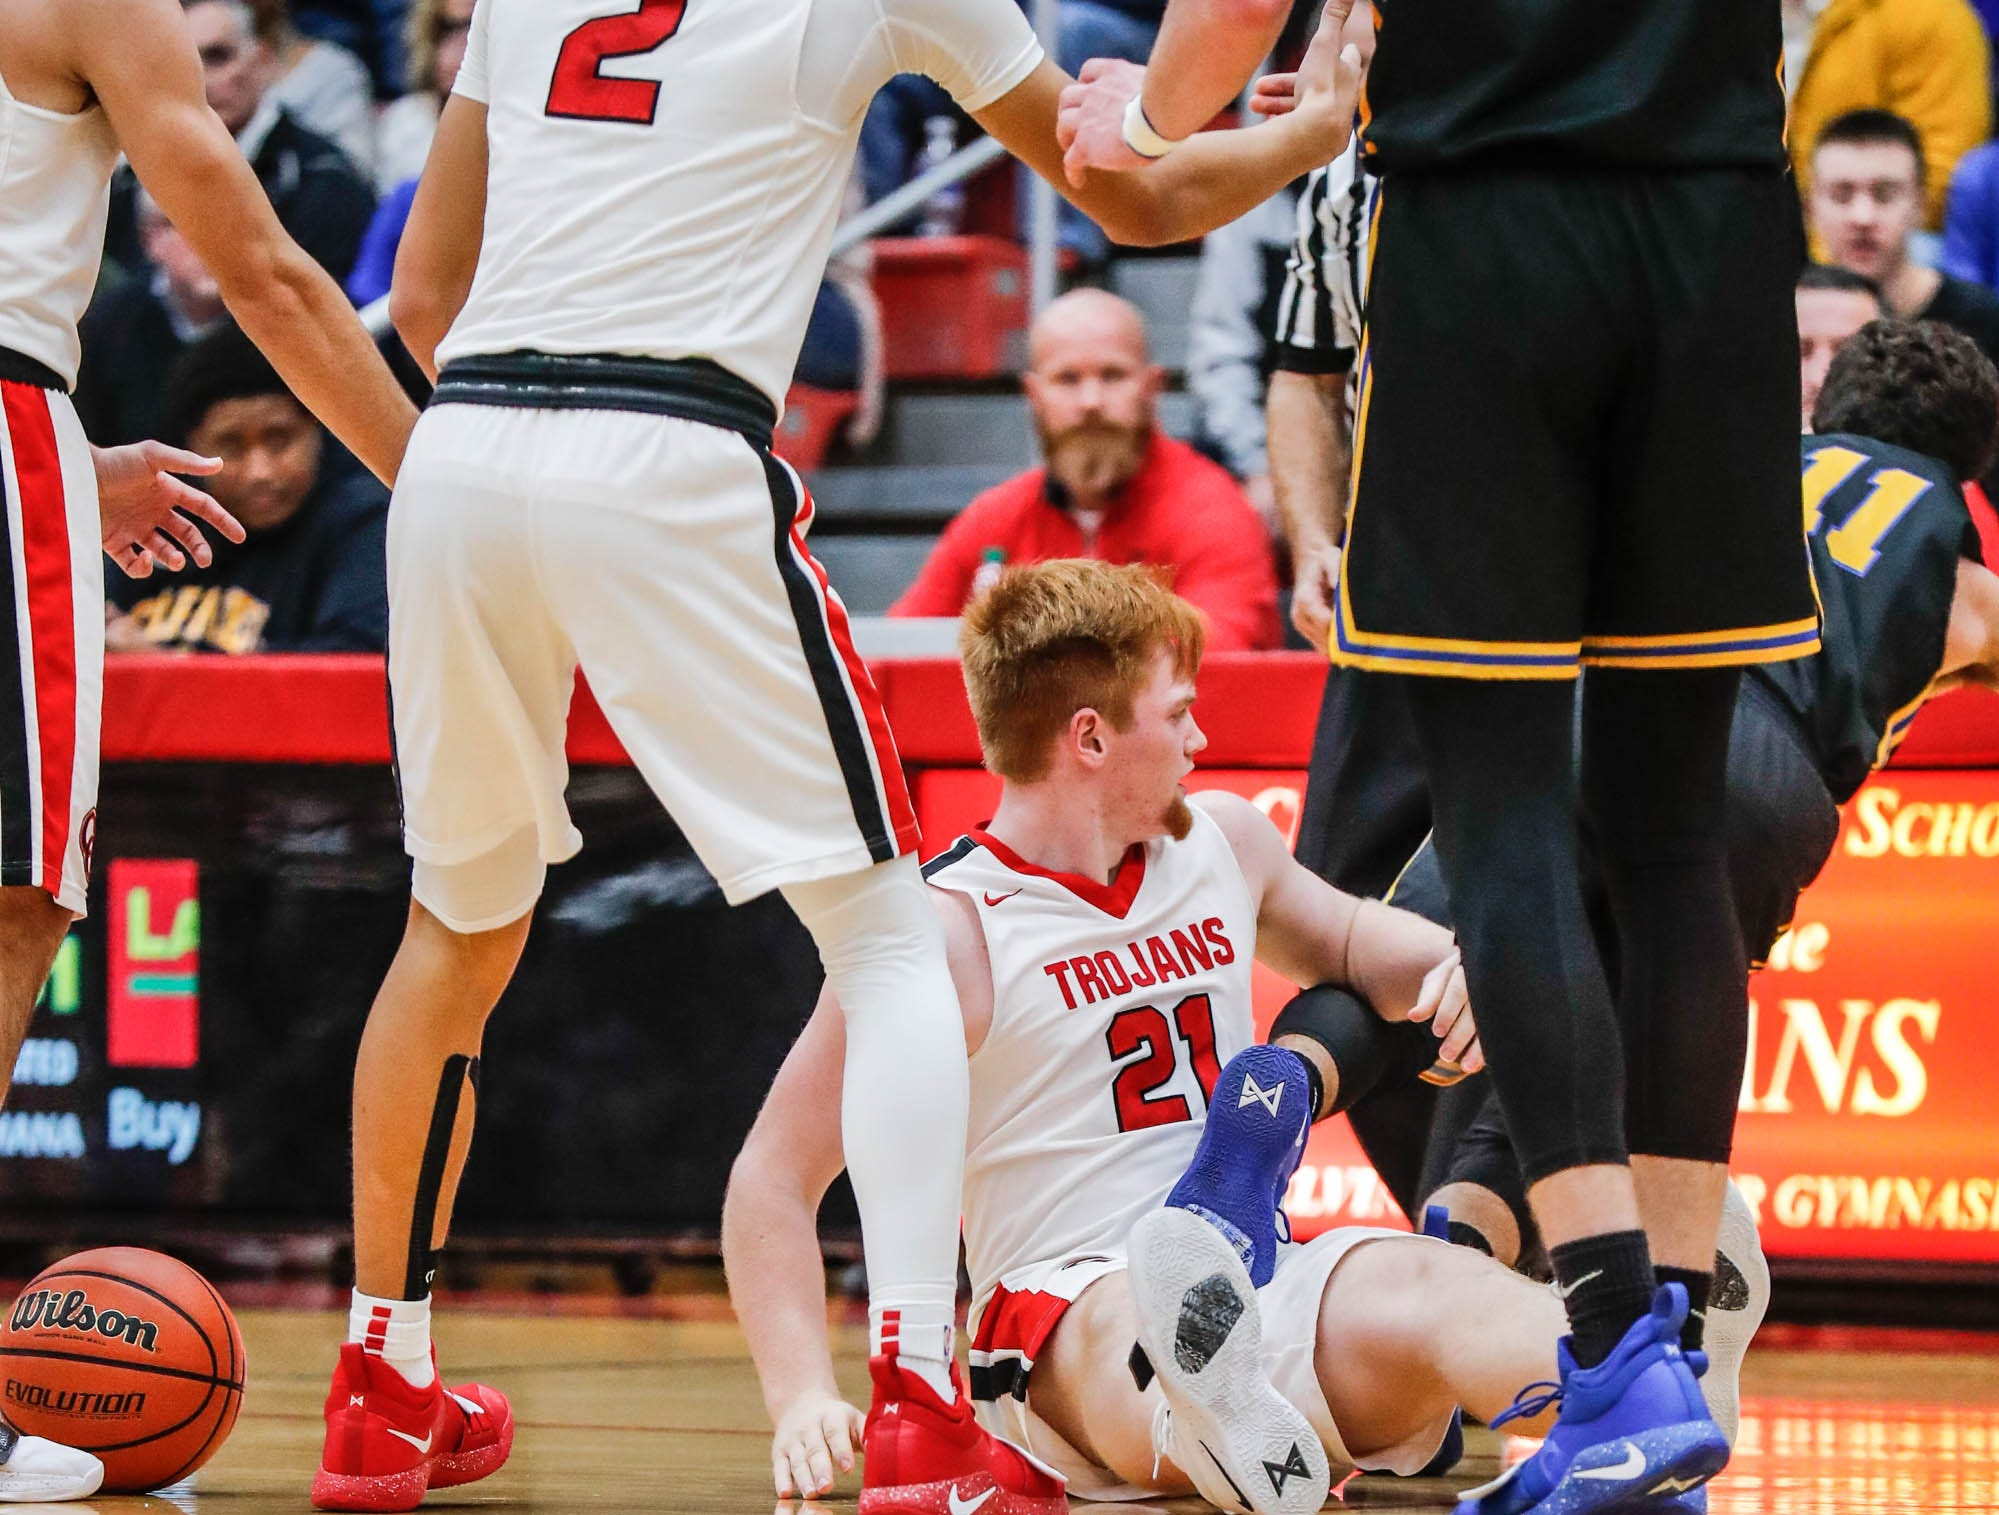 Carmel High School's Luke Heady (11) is tripped by Center Grove High School's forward Cameron Petty (21), after stepping on him in a scuffle for the ball, during a game between Center Grove High School and Carmel High School, held at Center Grove on on Friday, Jan. 4, 2019. A technical foul was called on Carmel High School's Luke Heady (11).